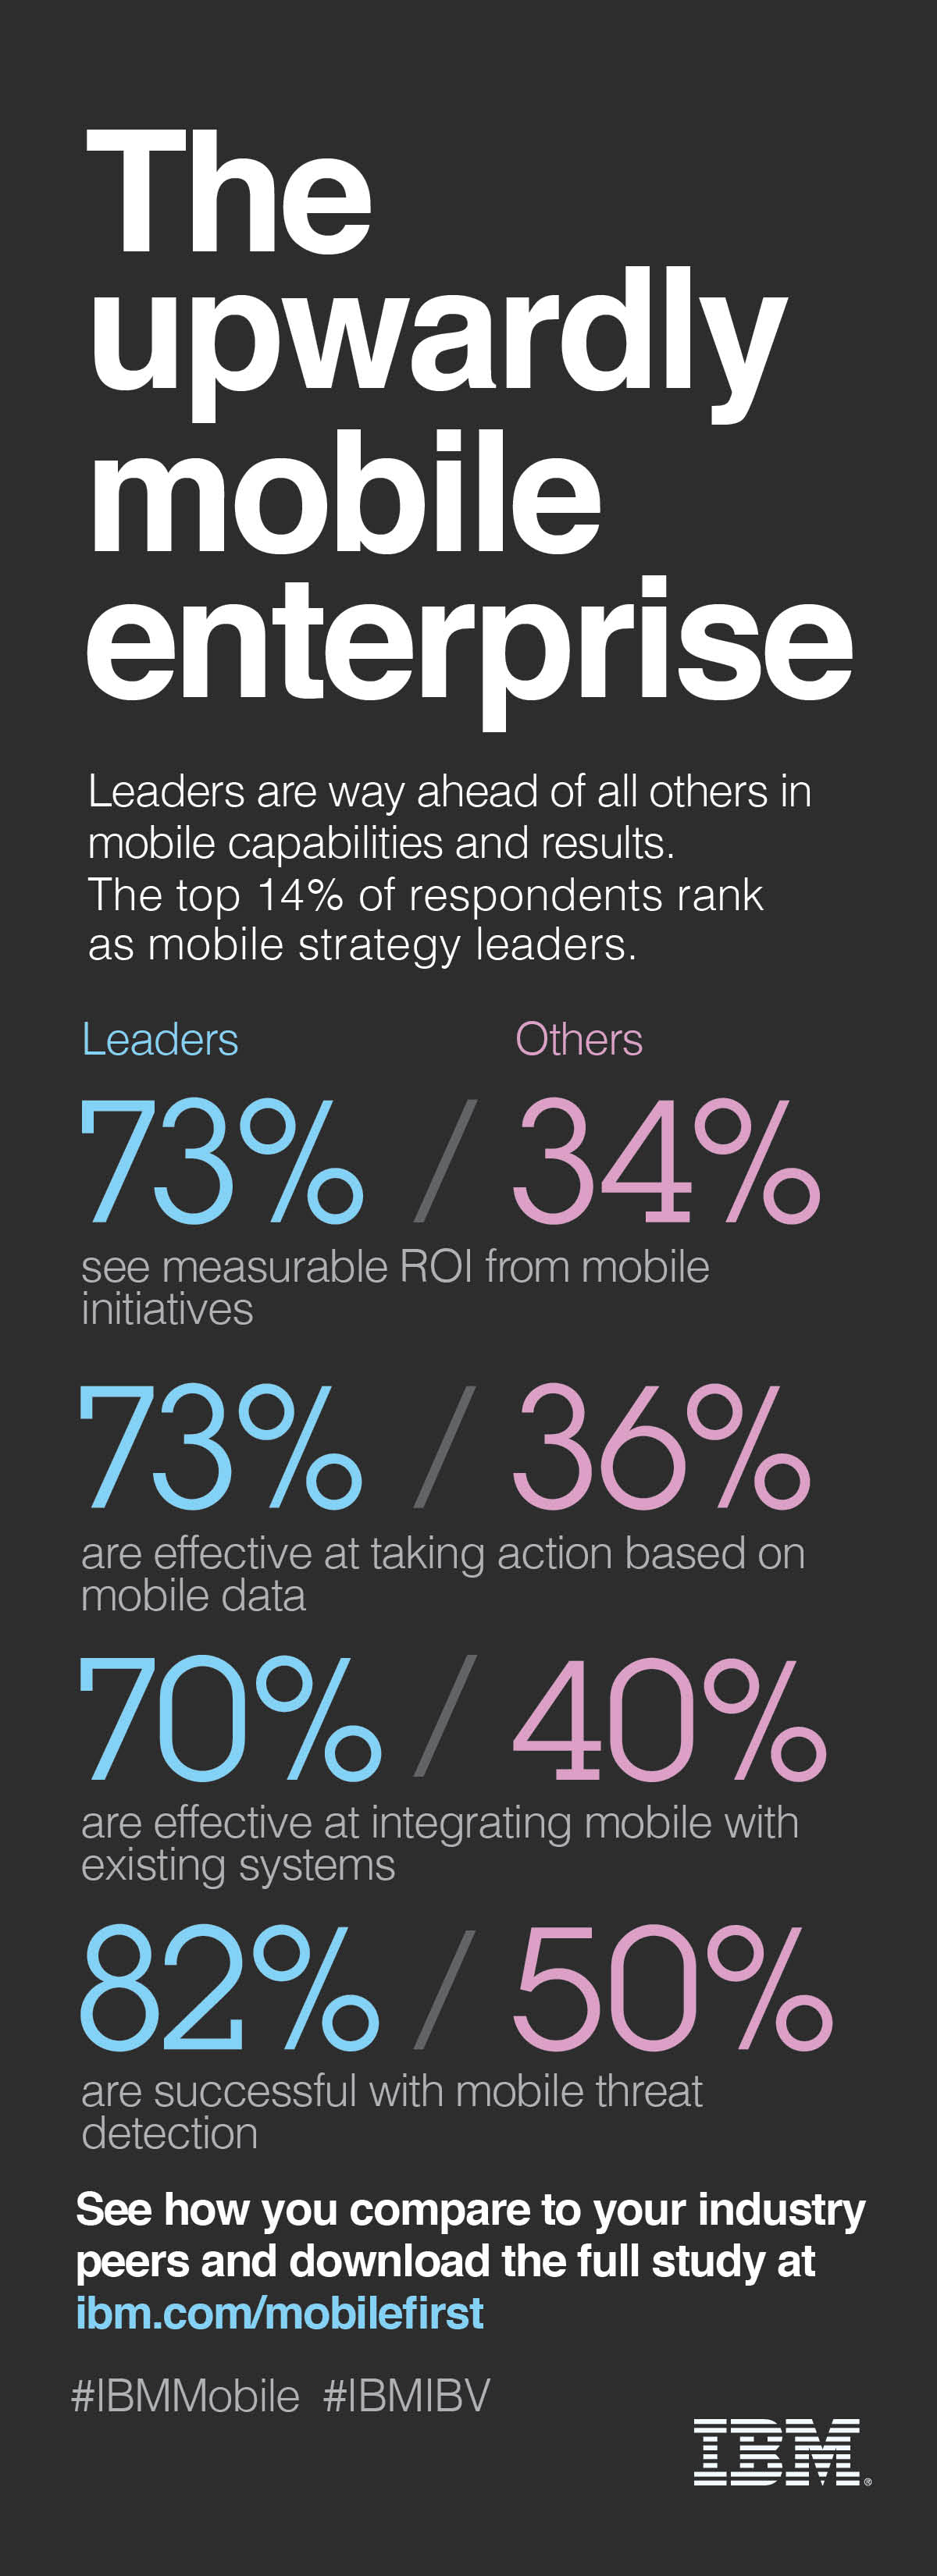 Upwardly mobile enterprise infographic